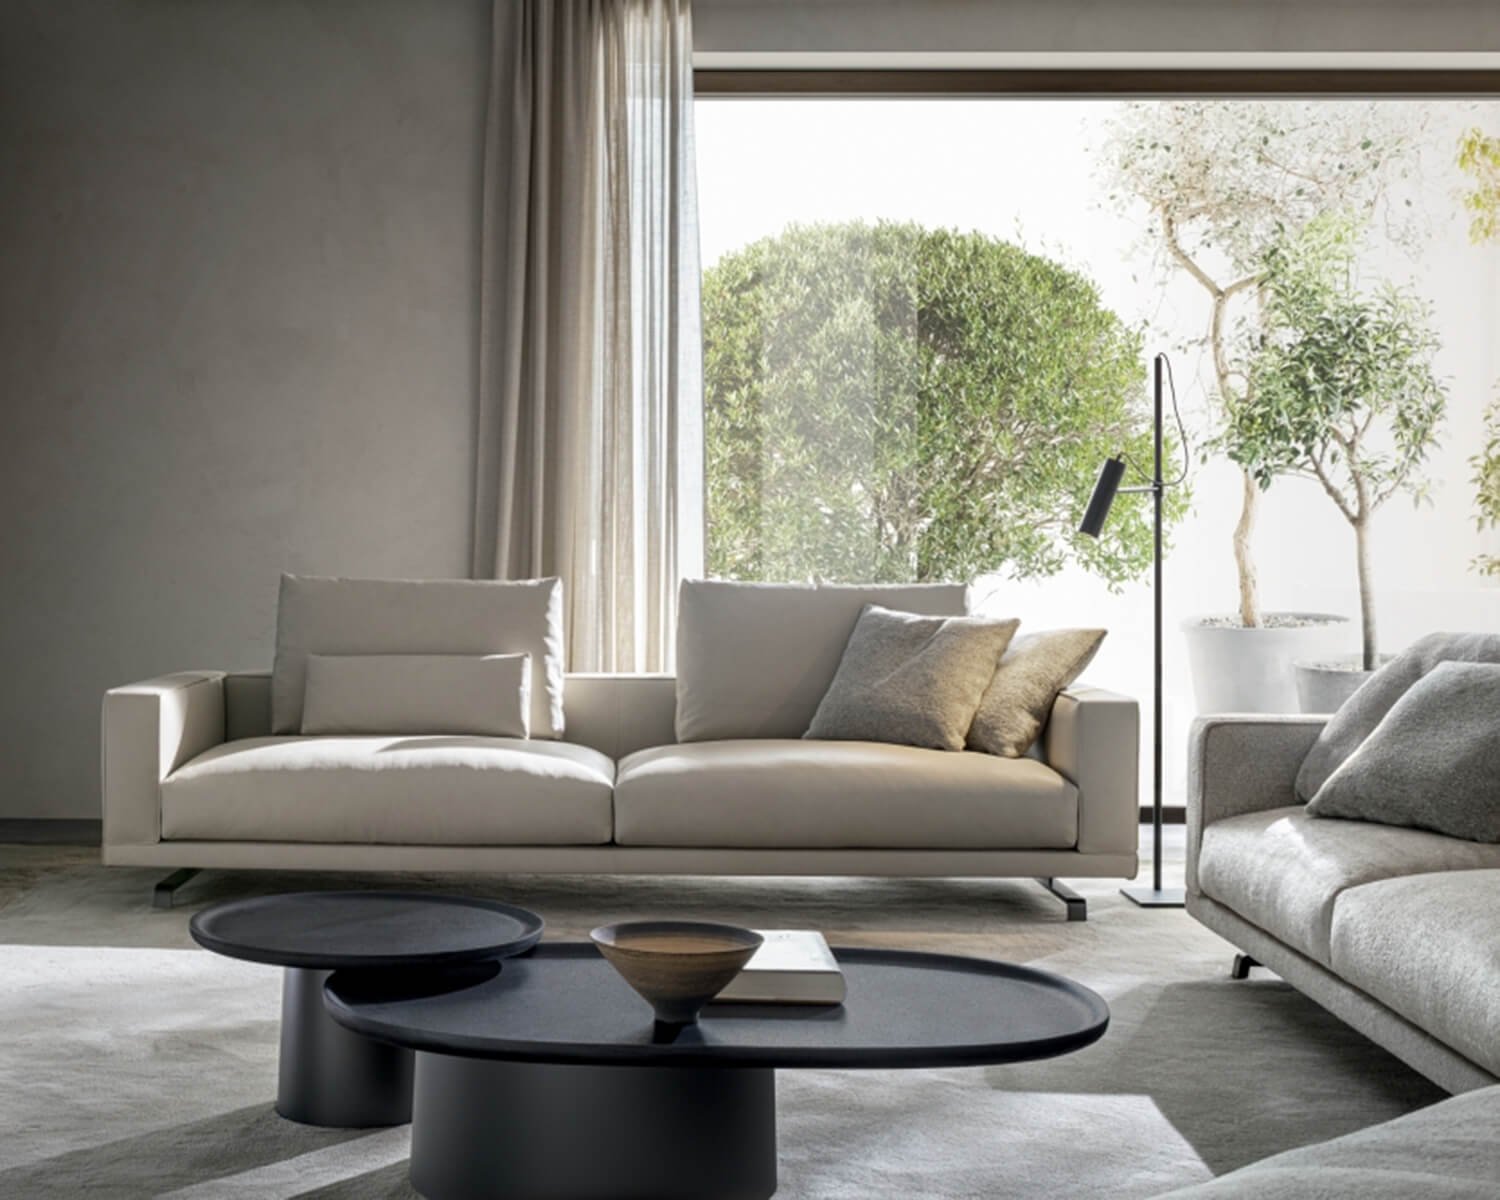 Beige Octave two-seater sofa in front of a window, with round black coffee tables